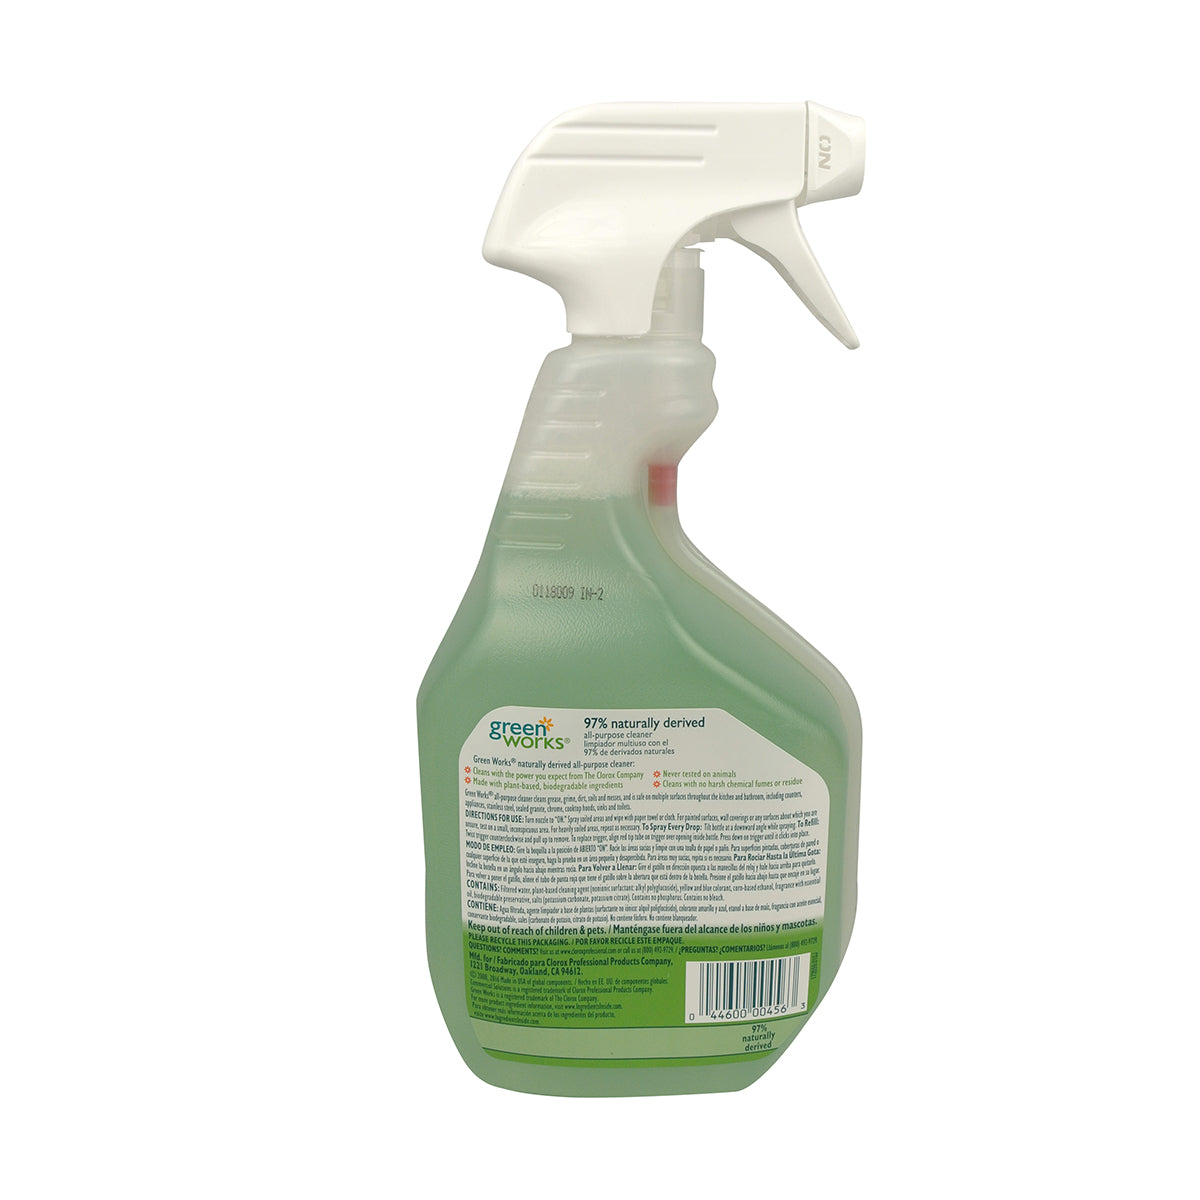 Clorox 00456 Green Works All Purpose Cleaner ShopAtDean